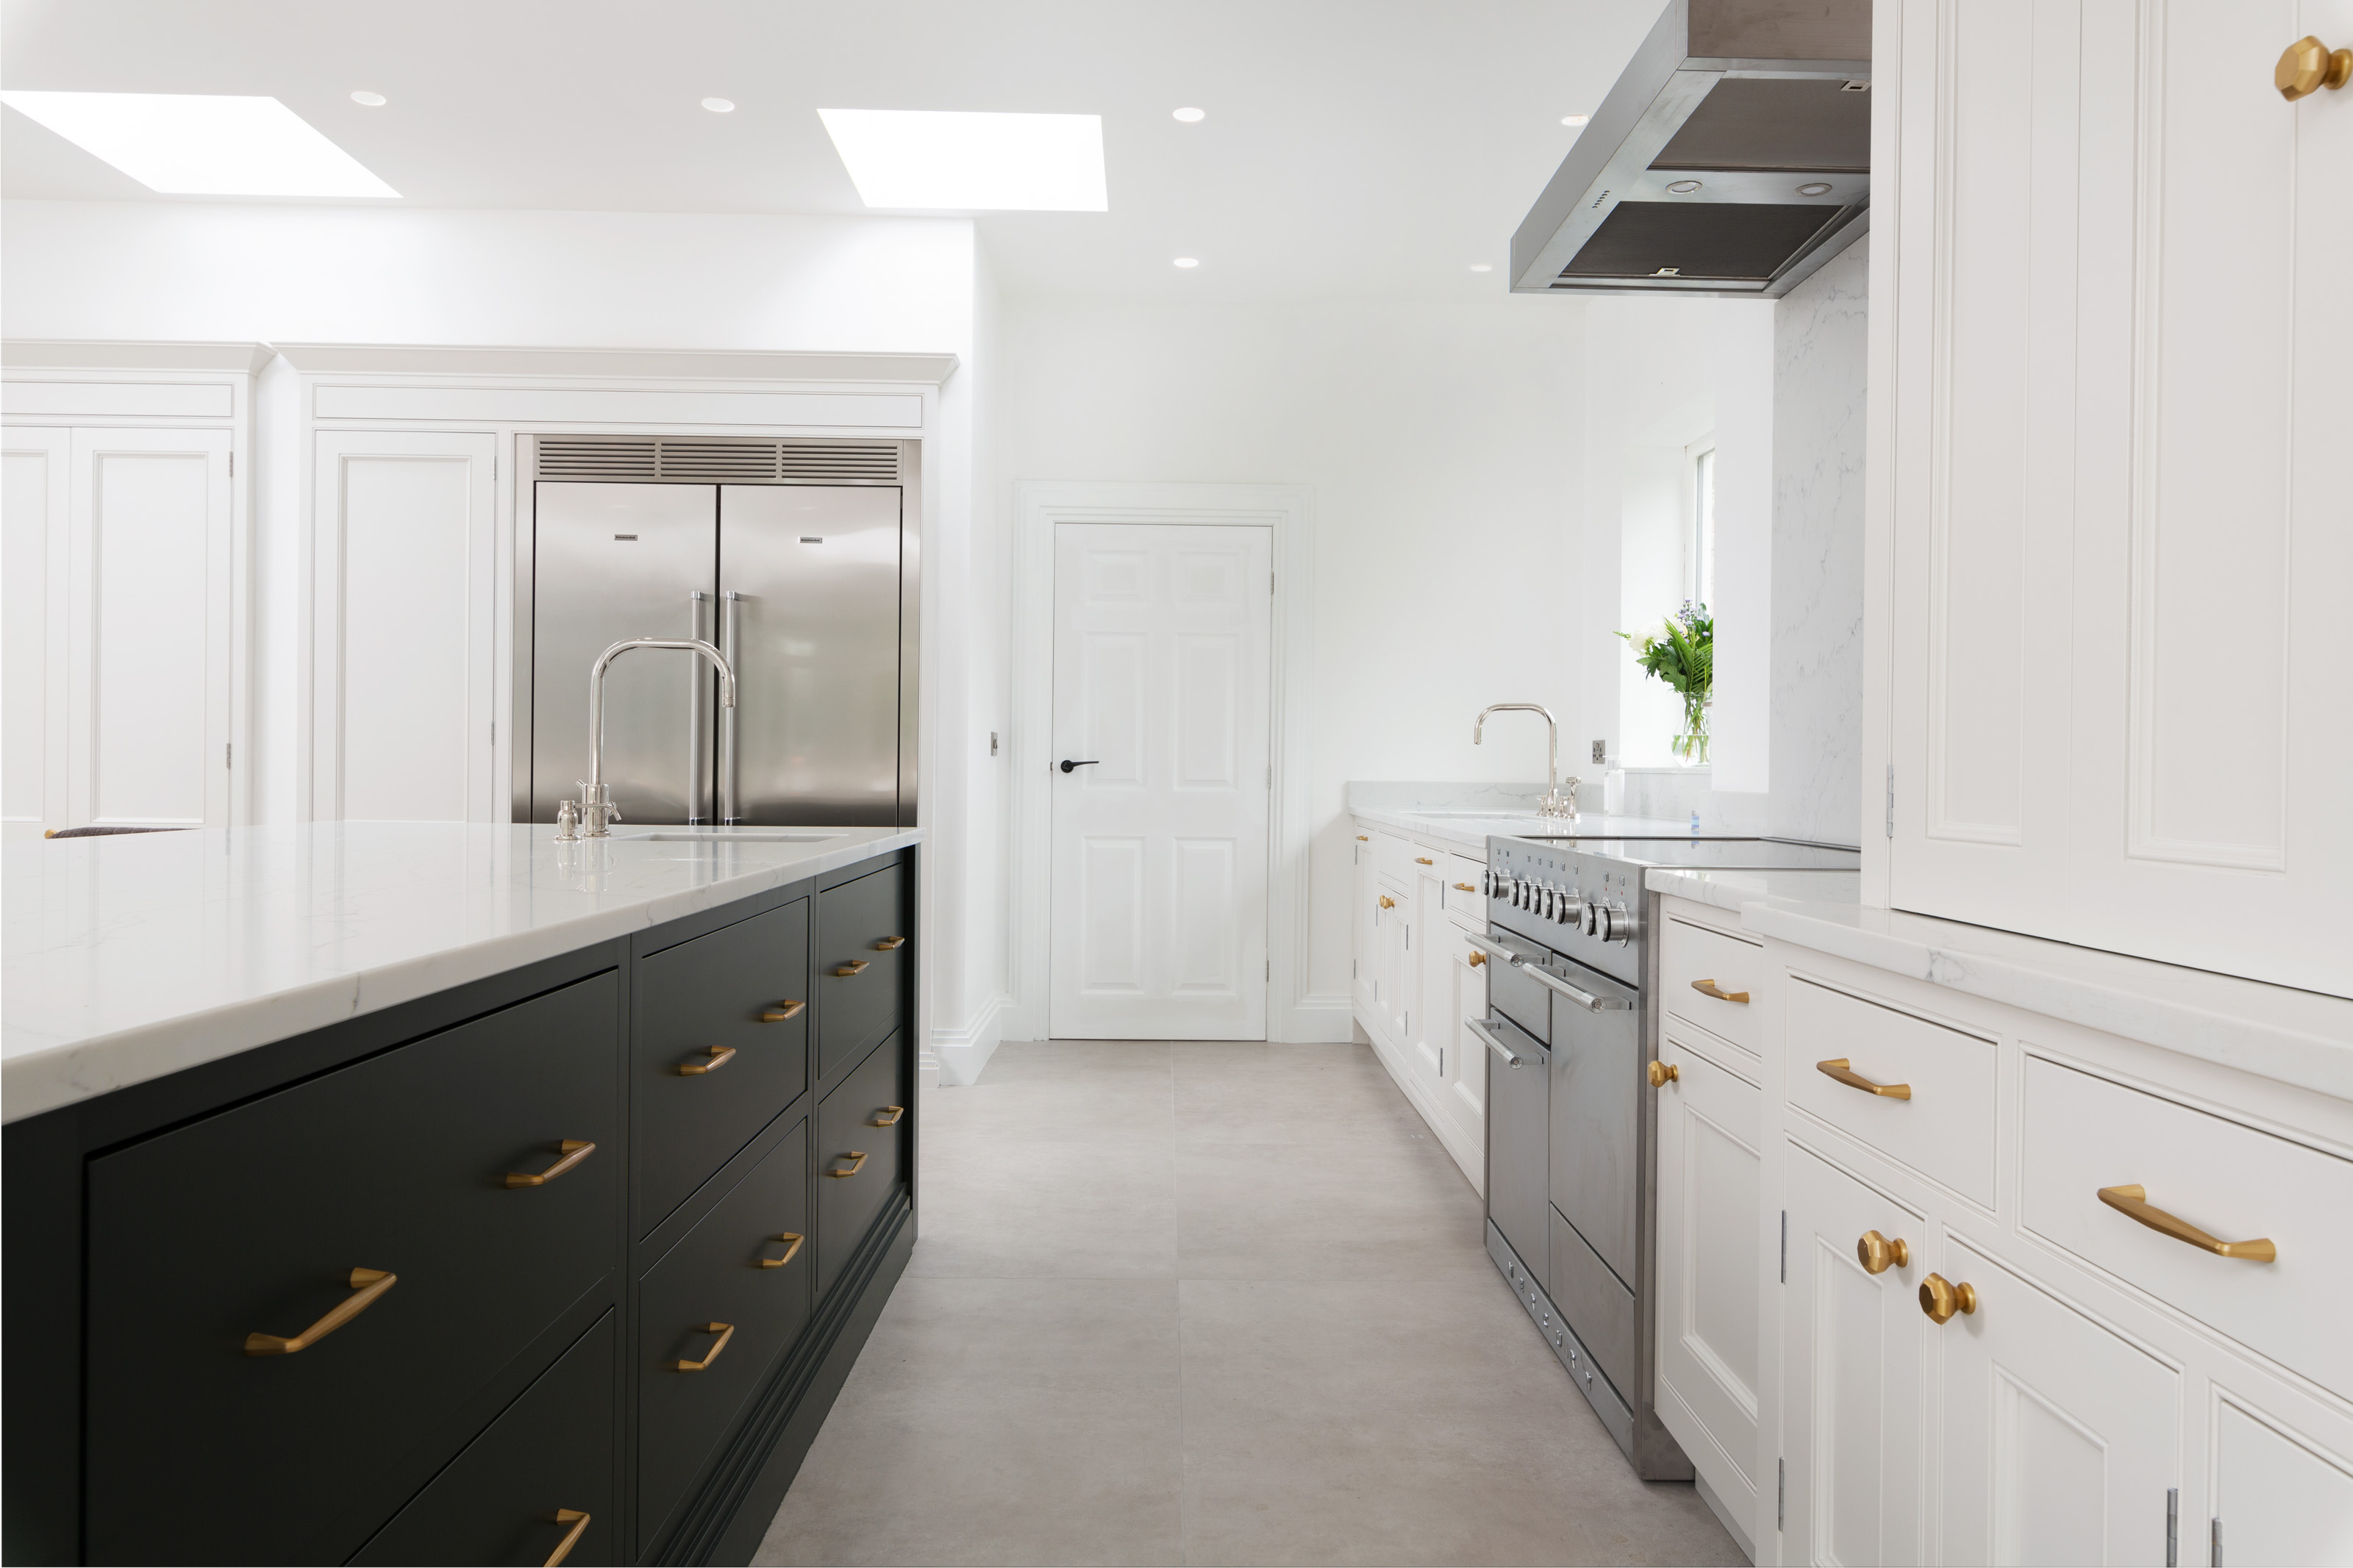 Watsons_Kitchens_Harrogate-5